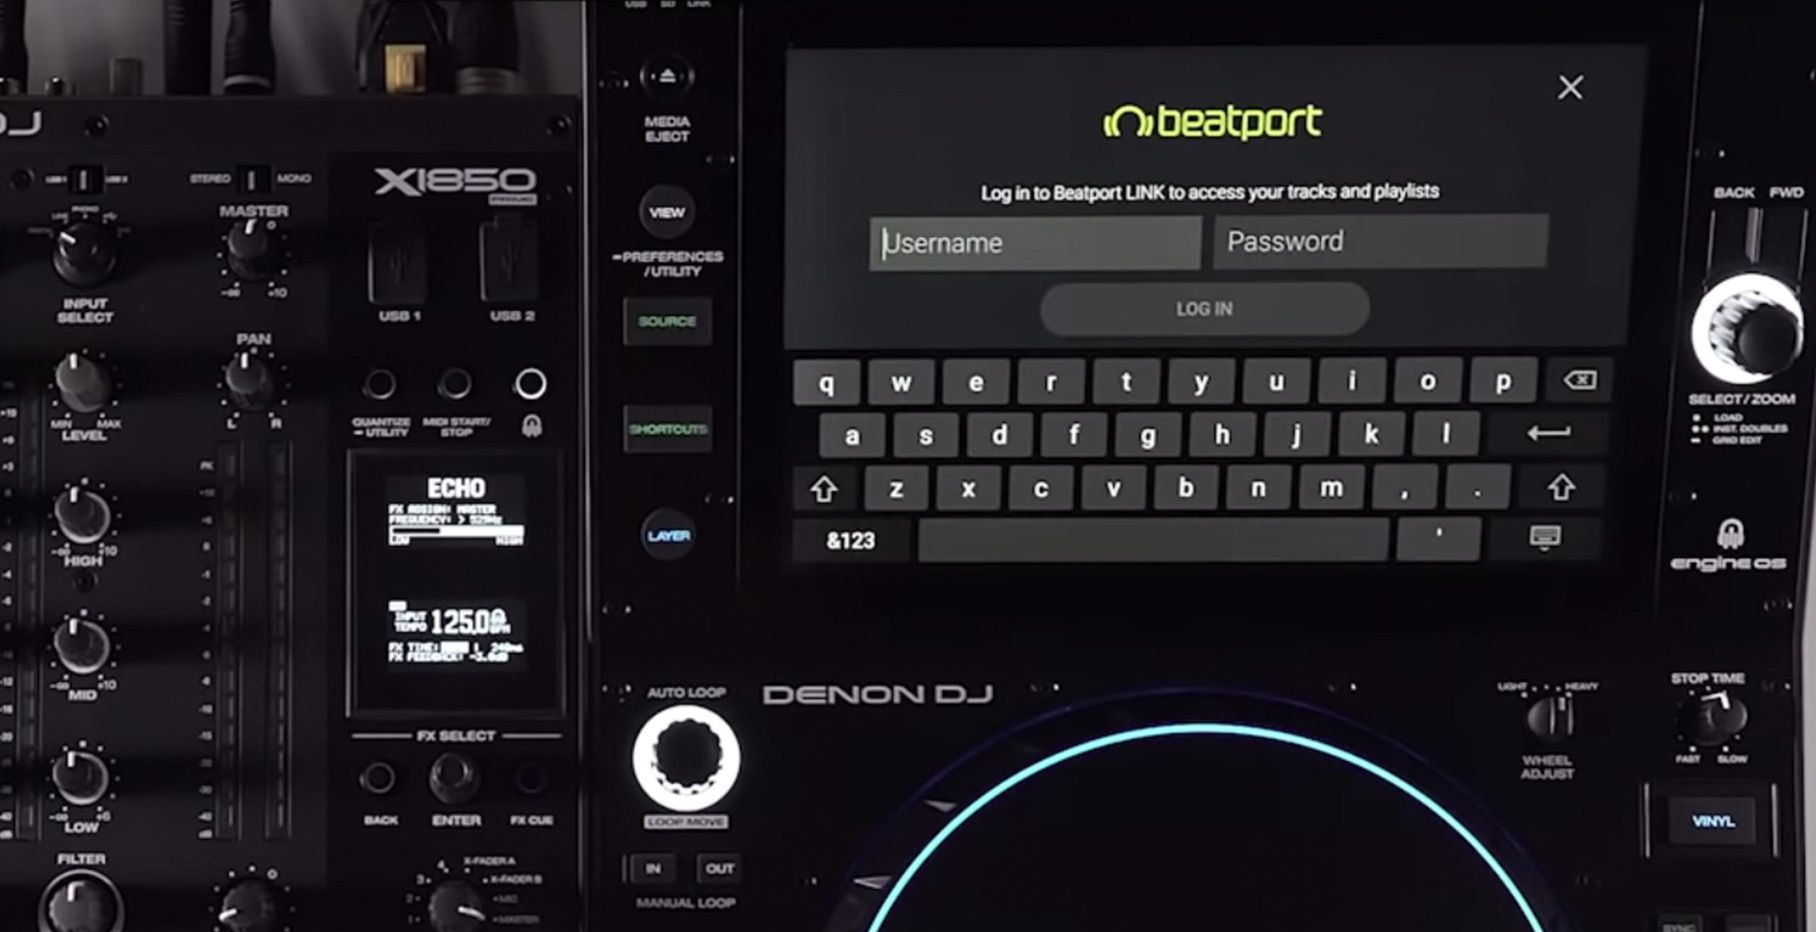 Denon's Engine OS releases v1.5 with Soundcloud Go+, Beatport Link